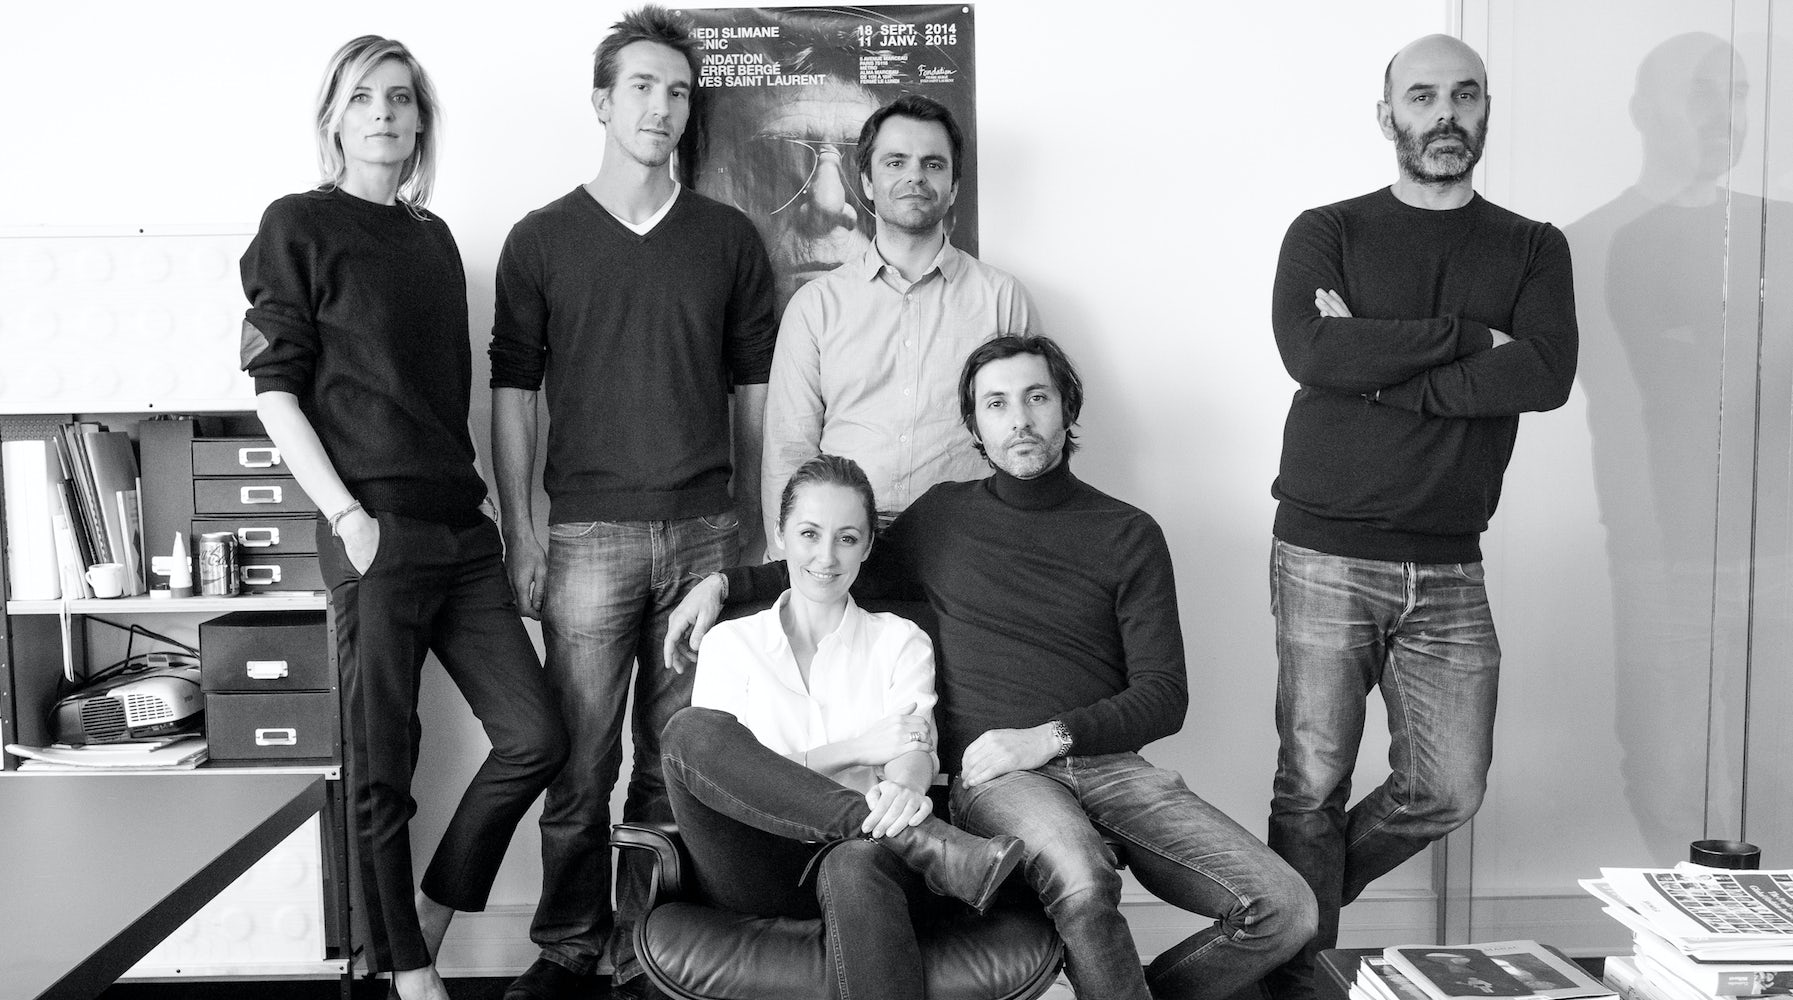 As 'Re-commerce' War Rages, Vestiaire Collective Arms Up with $62 Million Raise